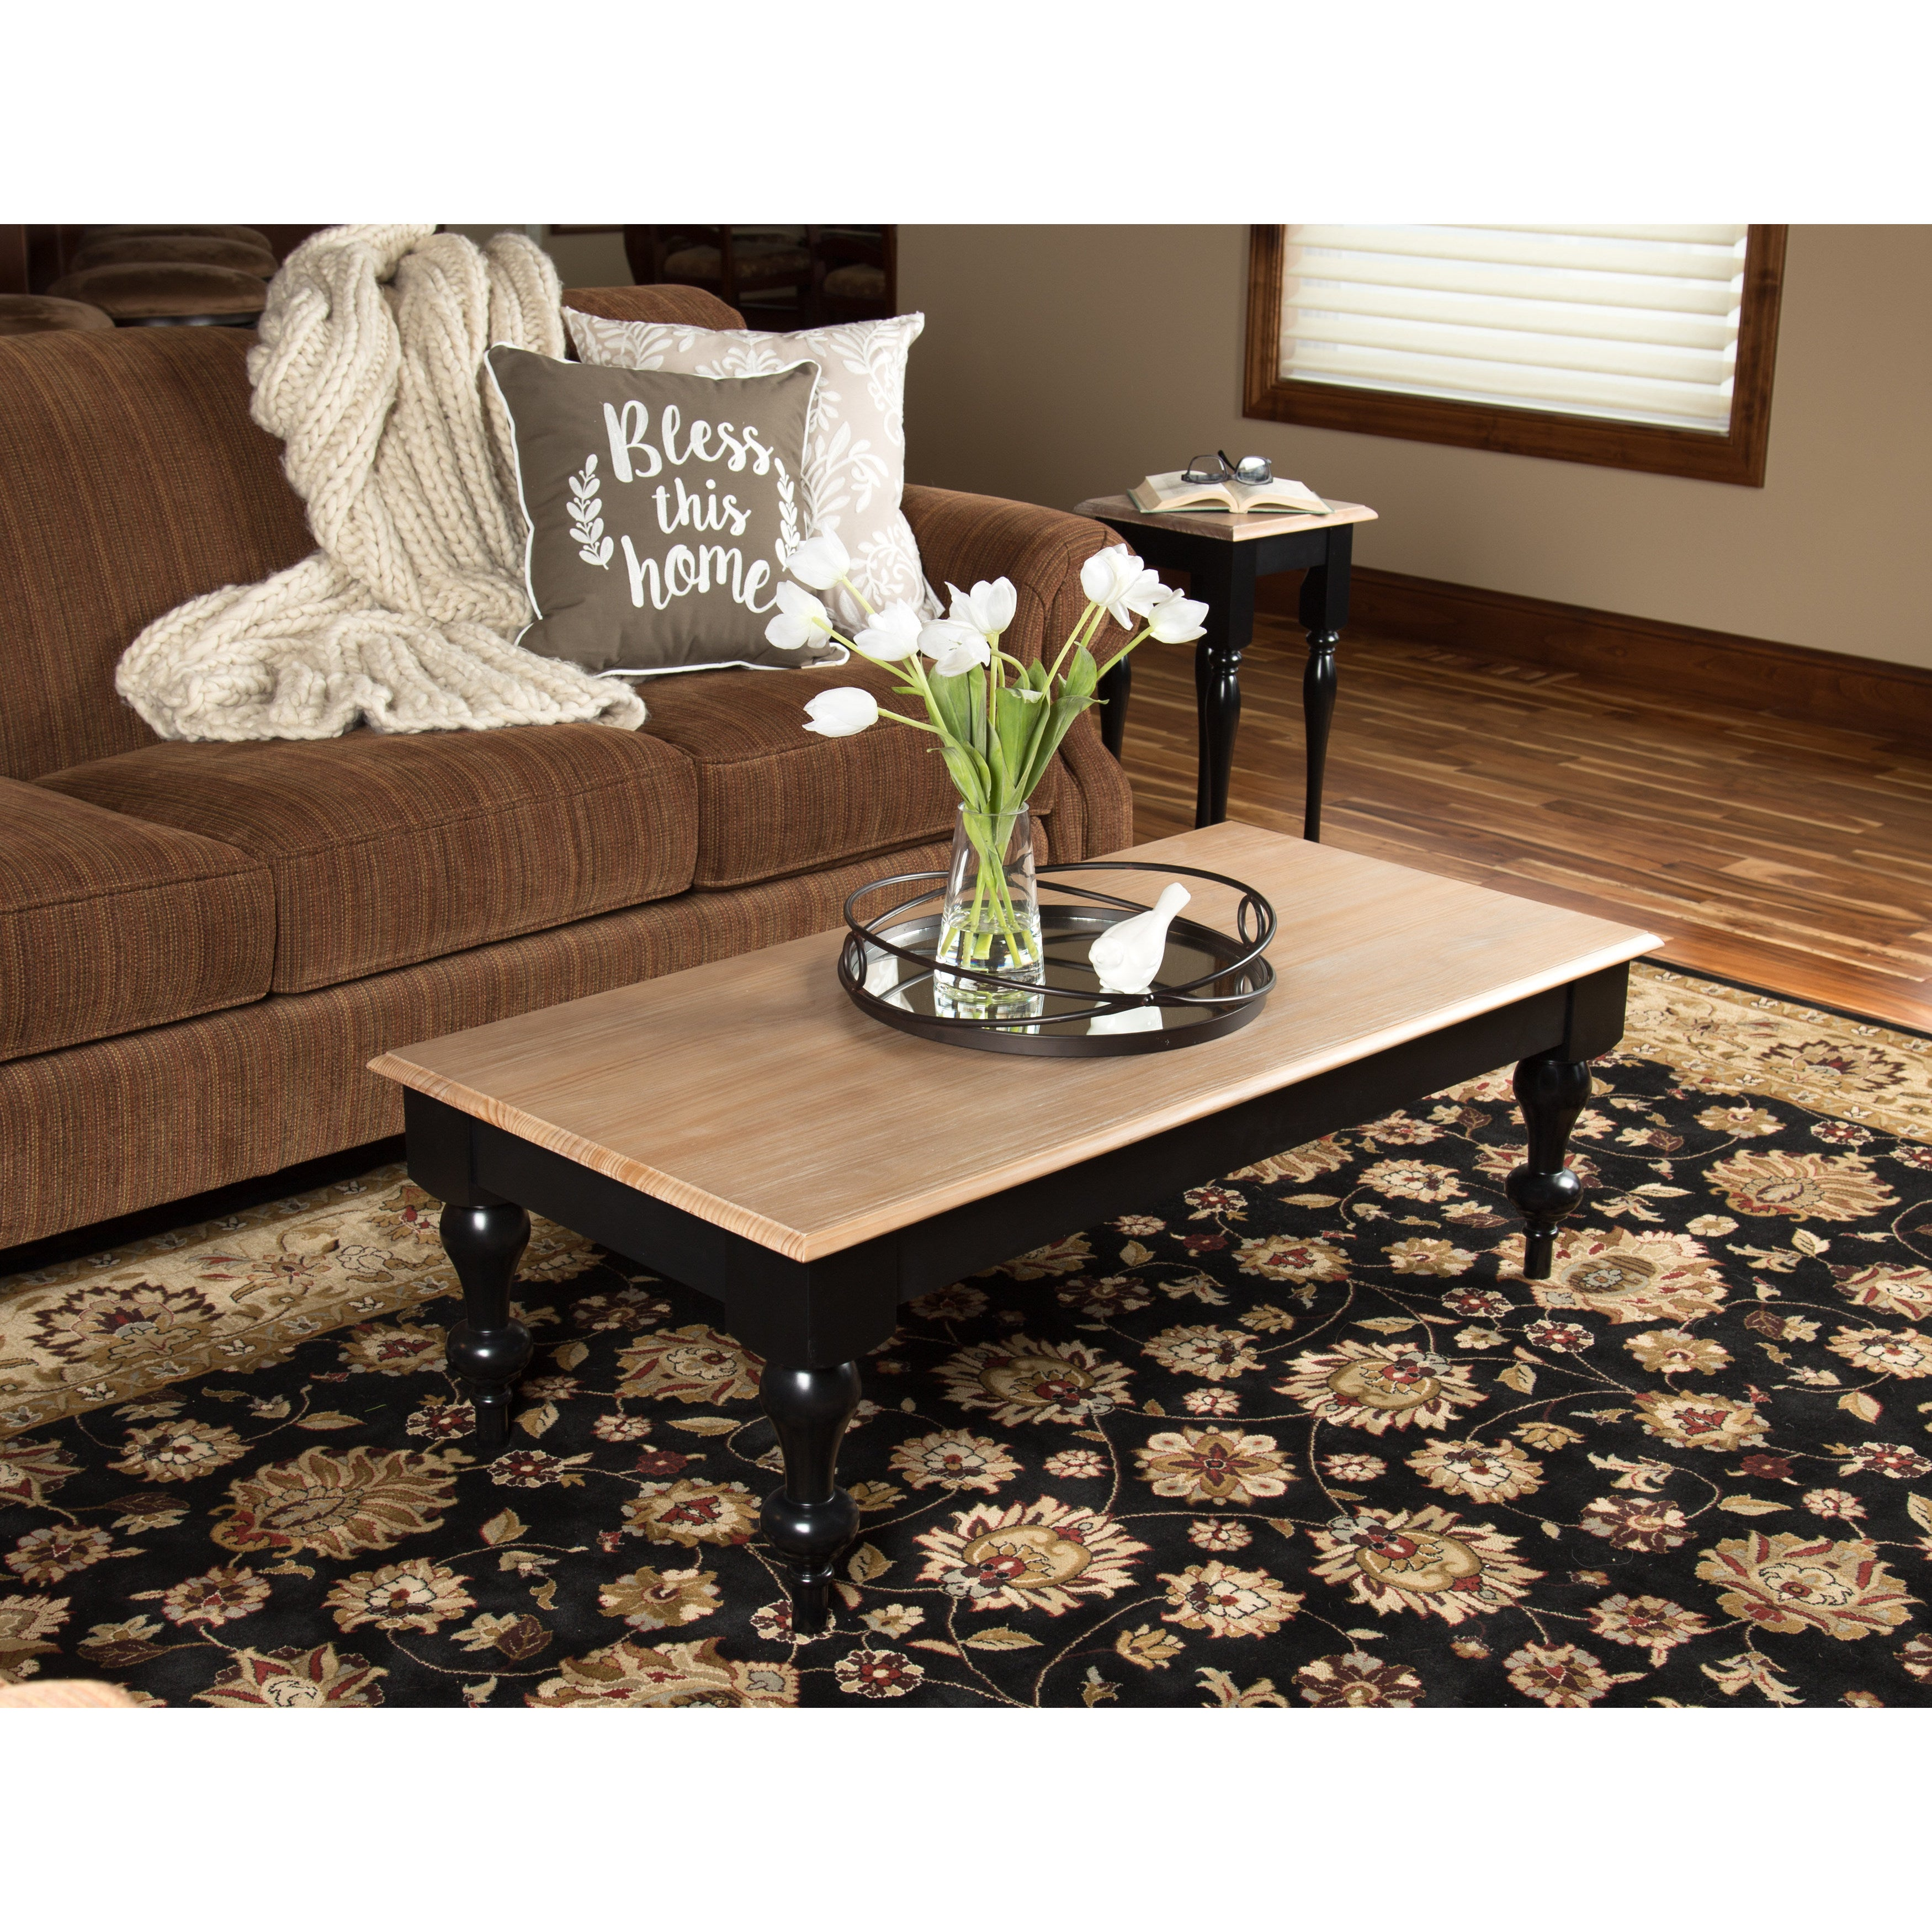 Kate And Laurel Sophia Rustic Wood Top Coffee Table   Free Shipping Today    Overstock.com   21178711